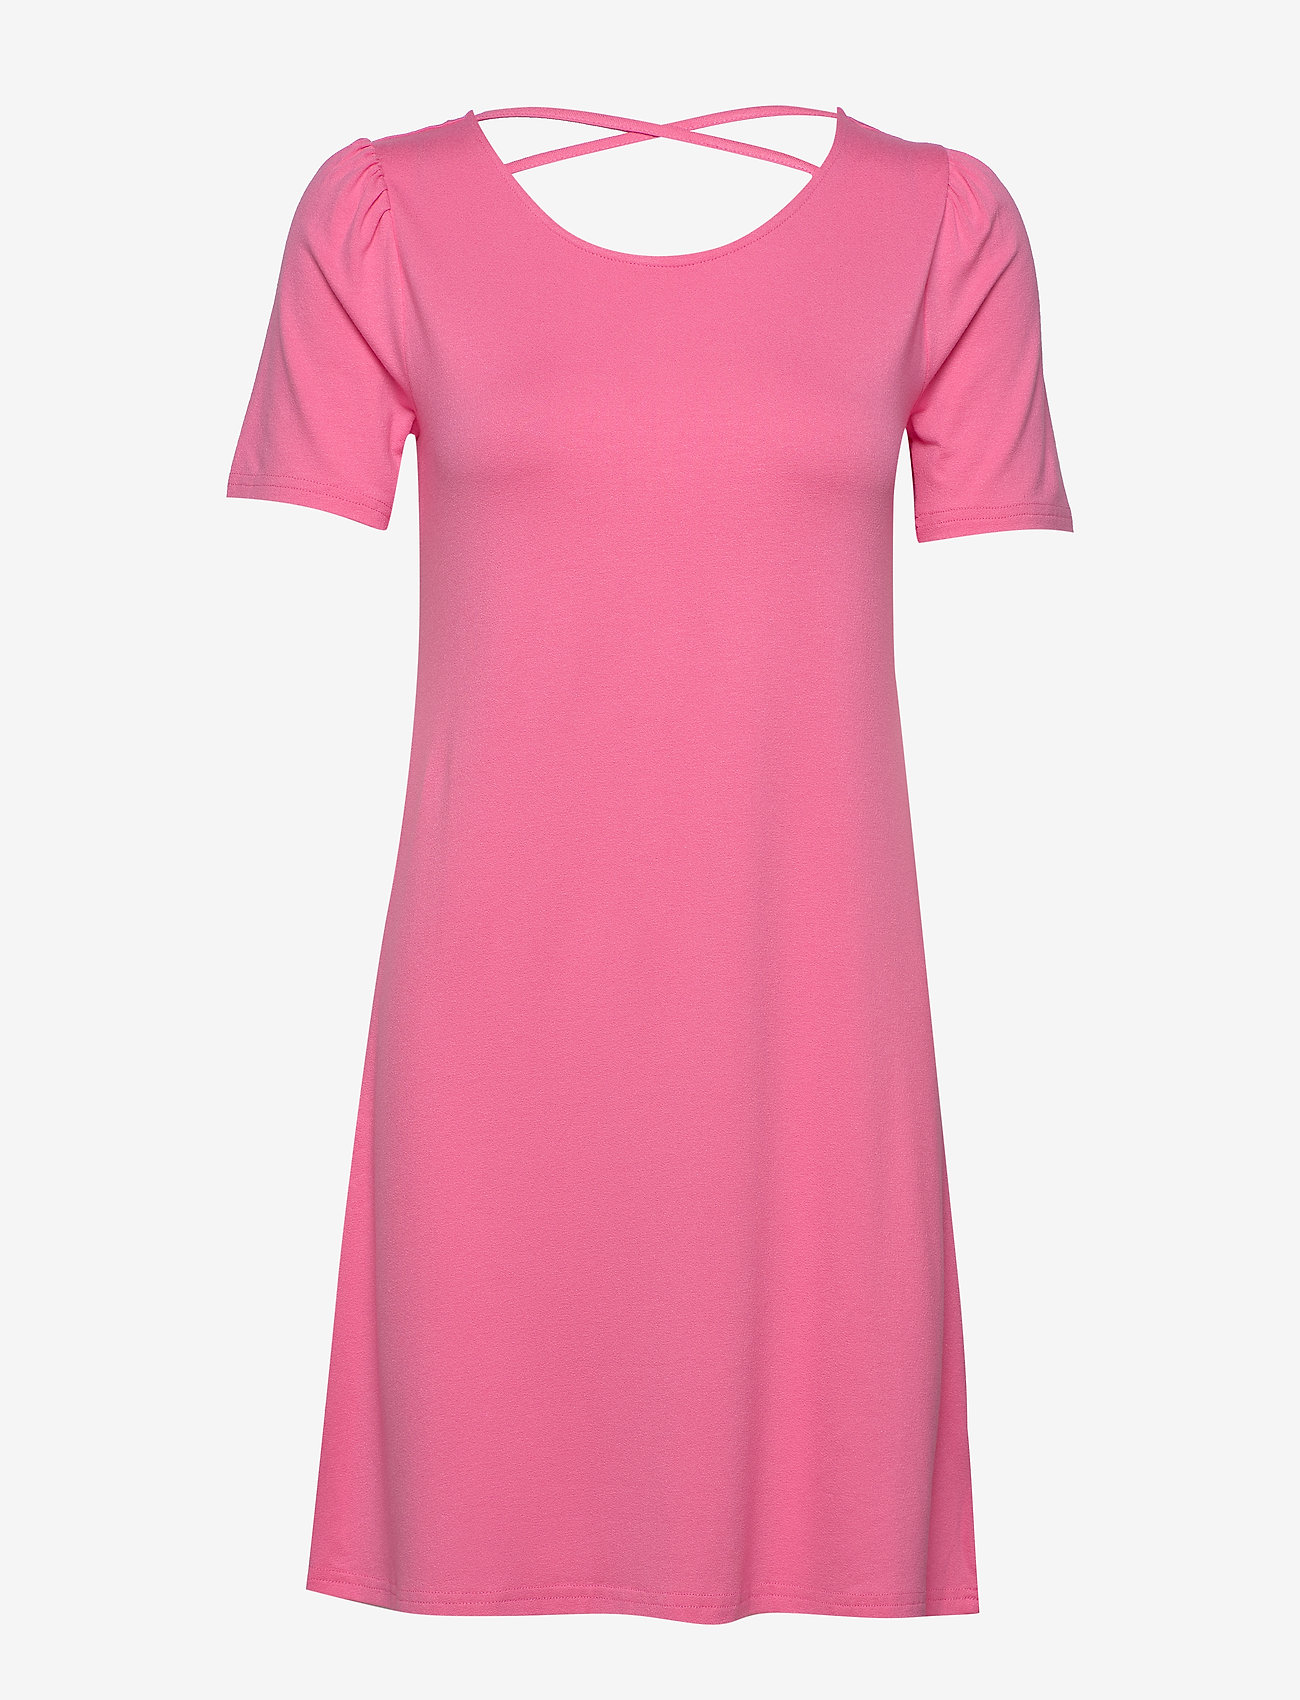 b.young - BYSELIA ADRESS - - everyday dresses - sorbet pink - 0